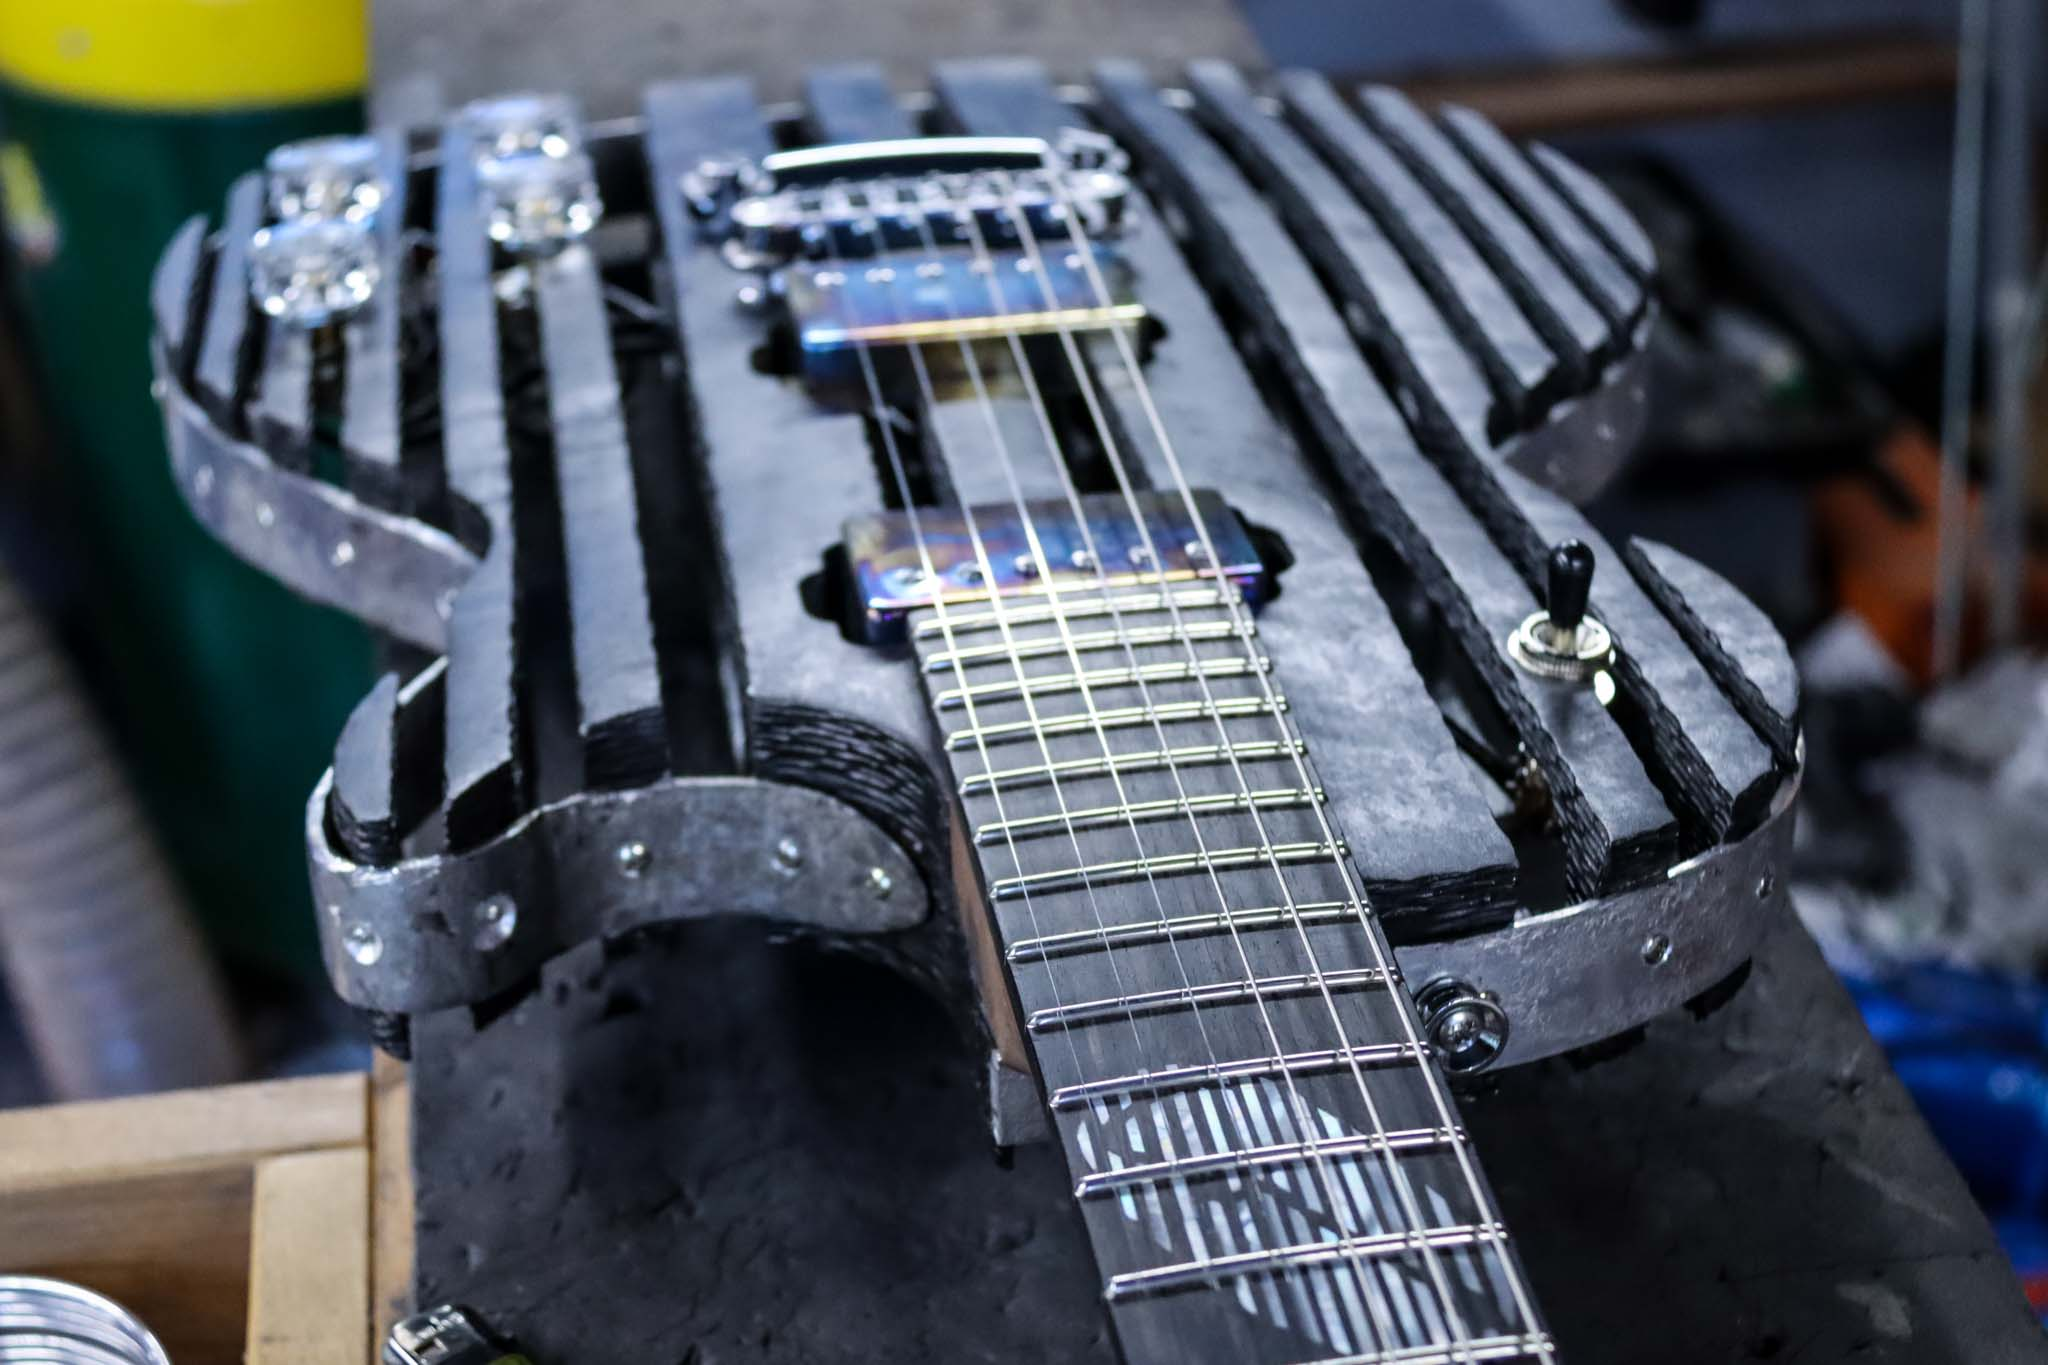 Ben Crowe - Finished Guitar (4 of 7)